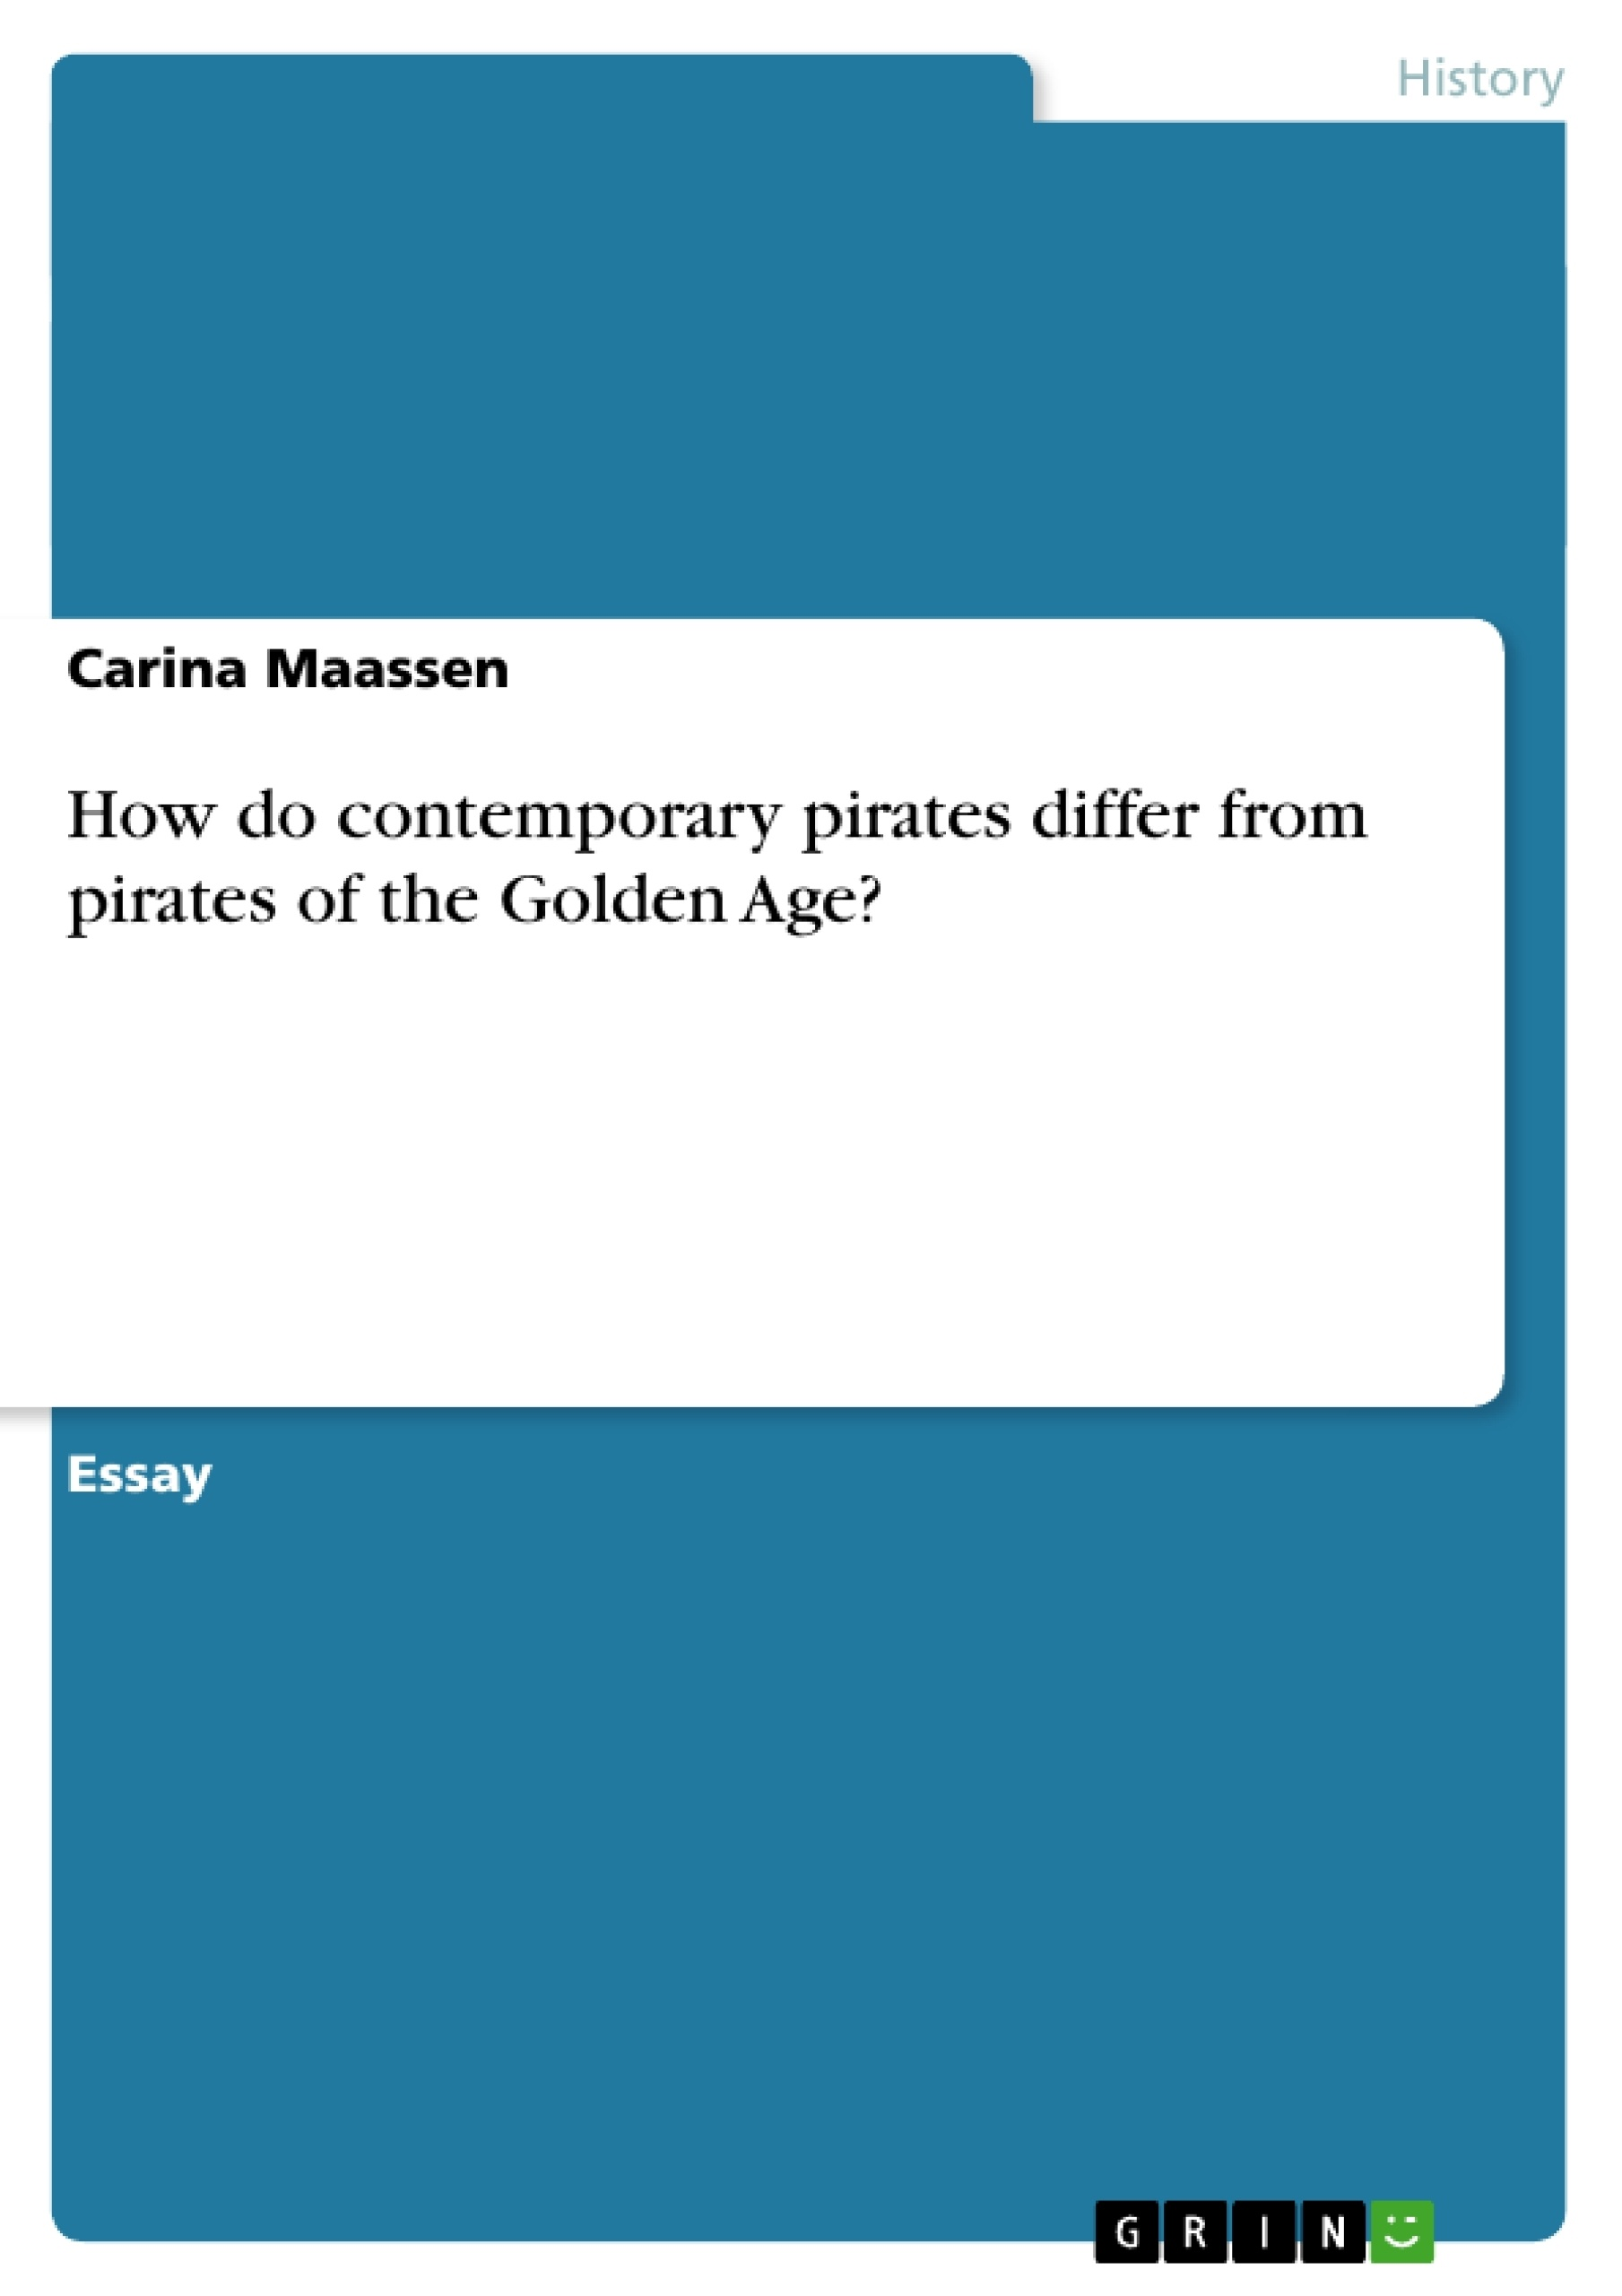 Title: How do contemporary pirates differ from pirates of the Golden Age?